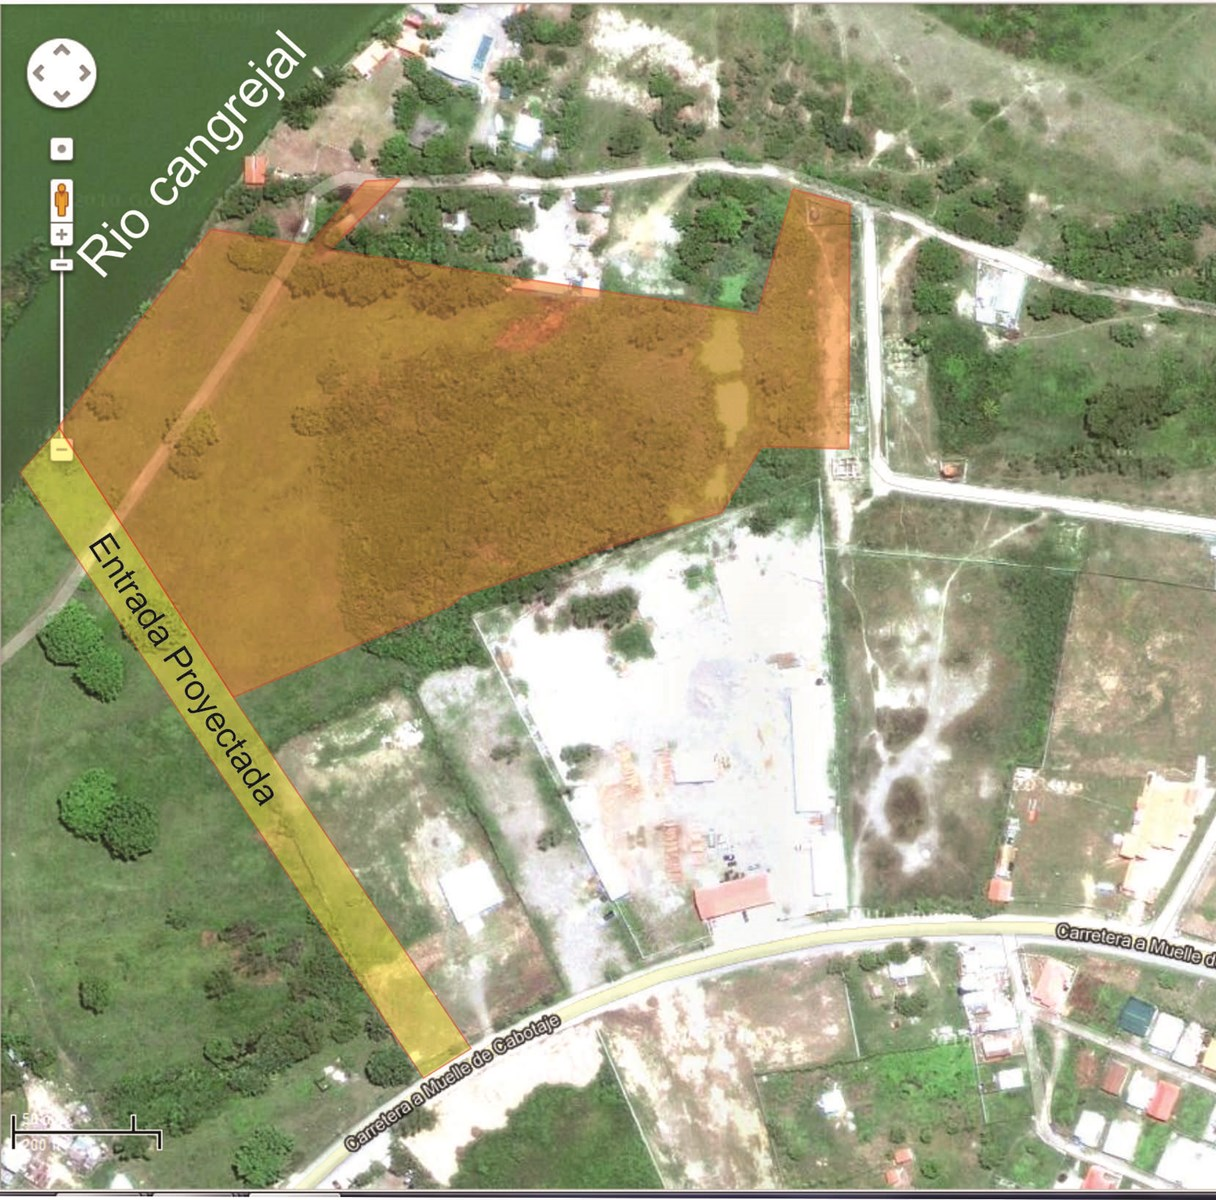 Caribbean Coast - Development Land. Residential, Commercial